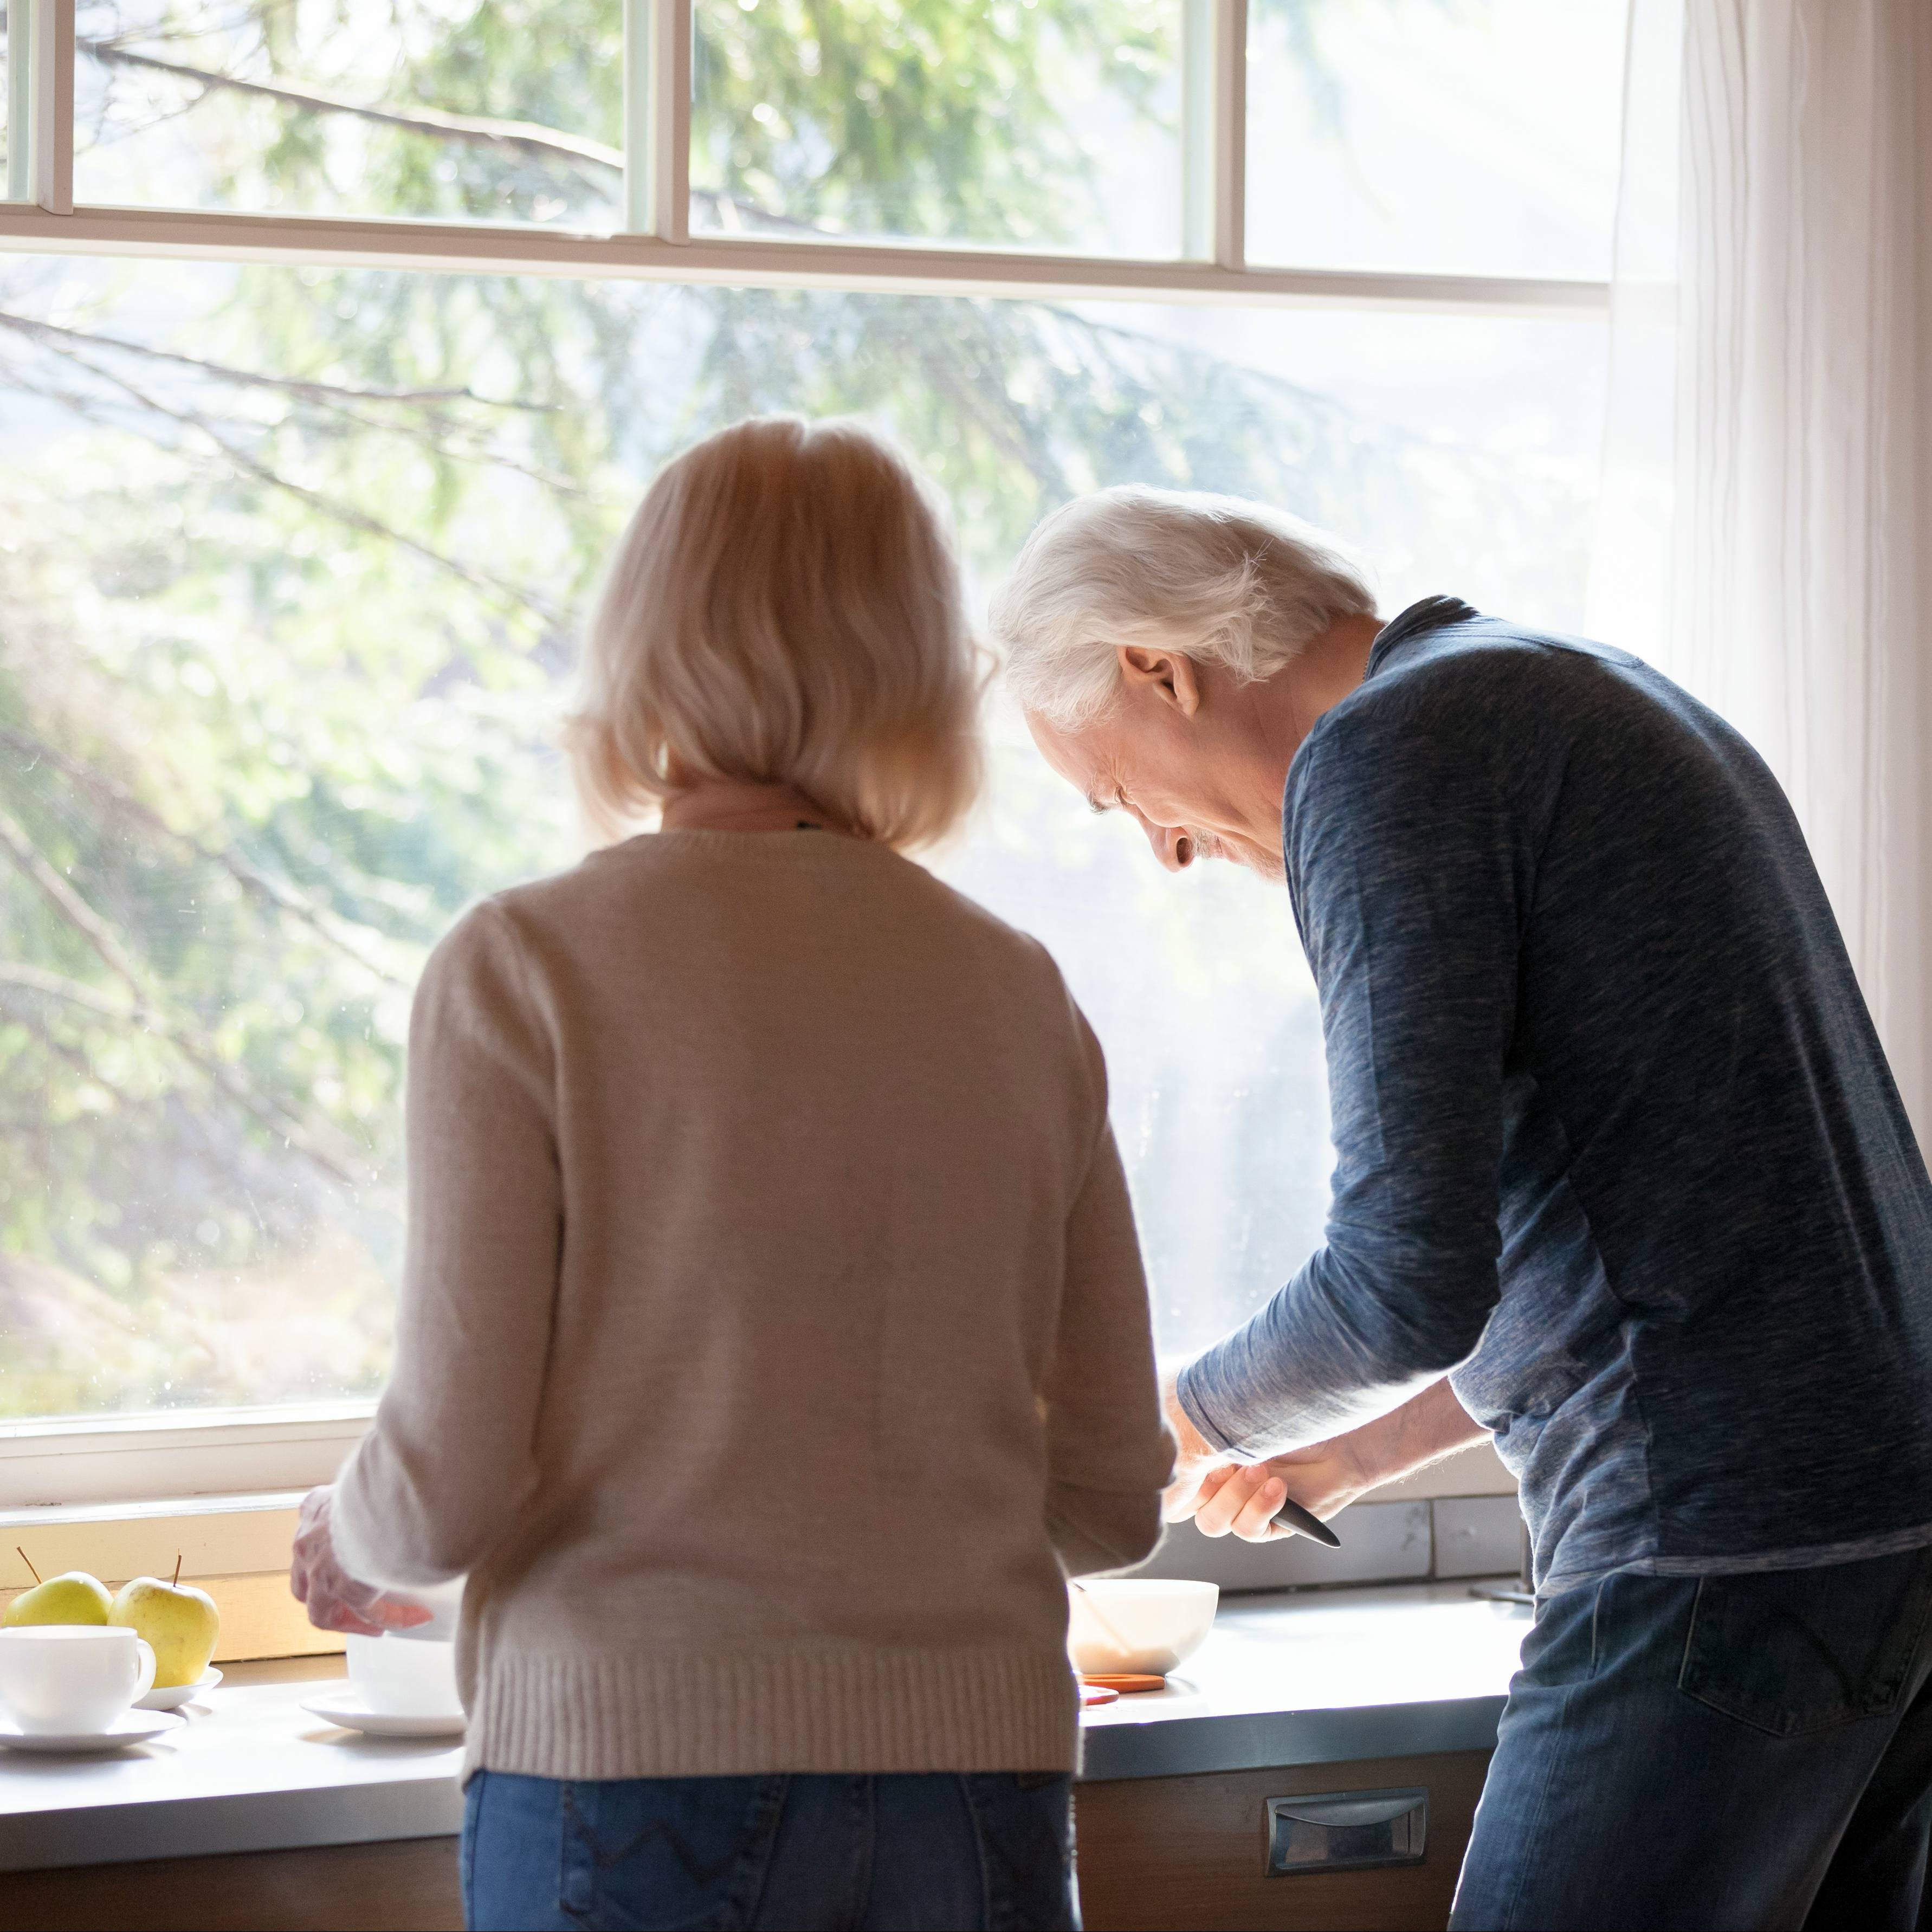 a white adult woman and man, middle-aged, working together at a kitchen counter near a sink and a sunny window, cutting fruit